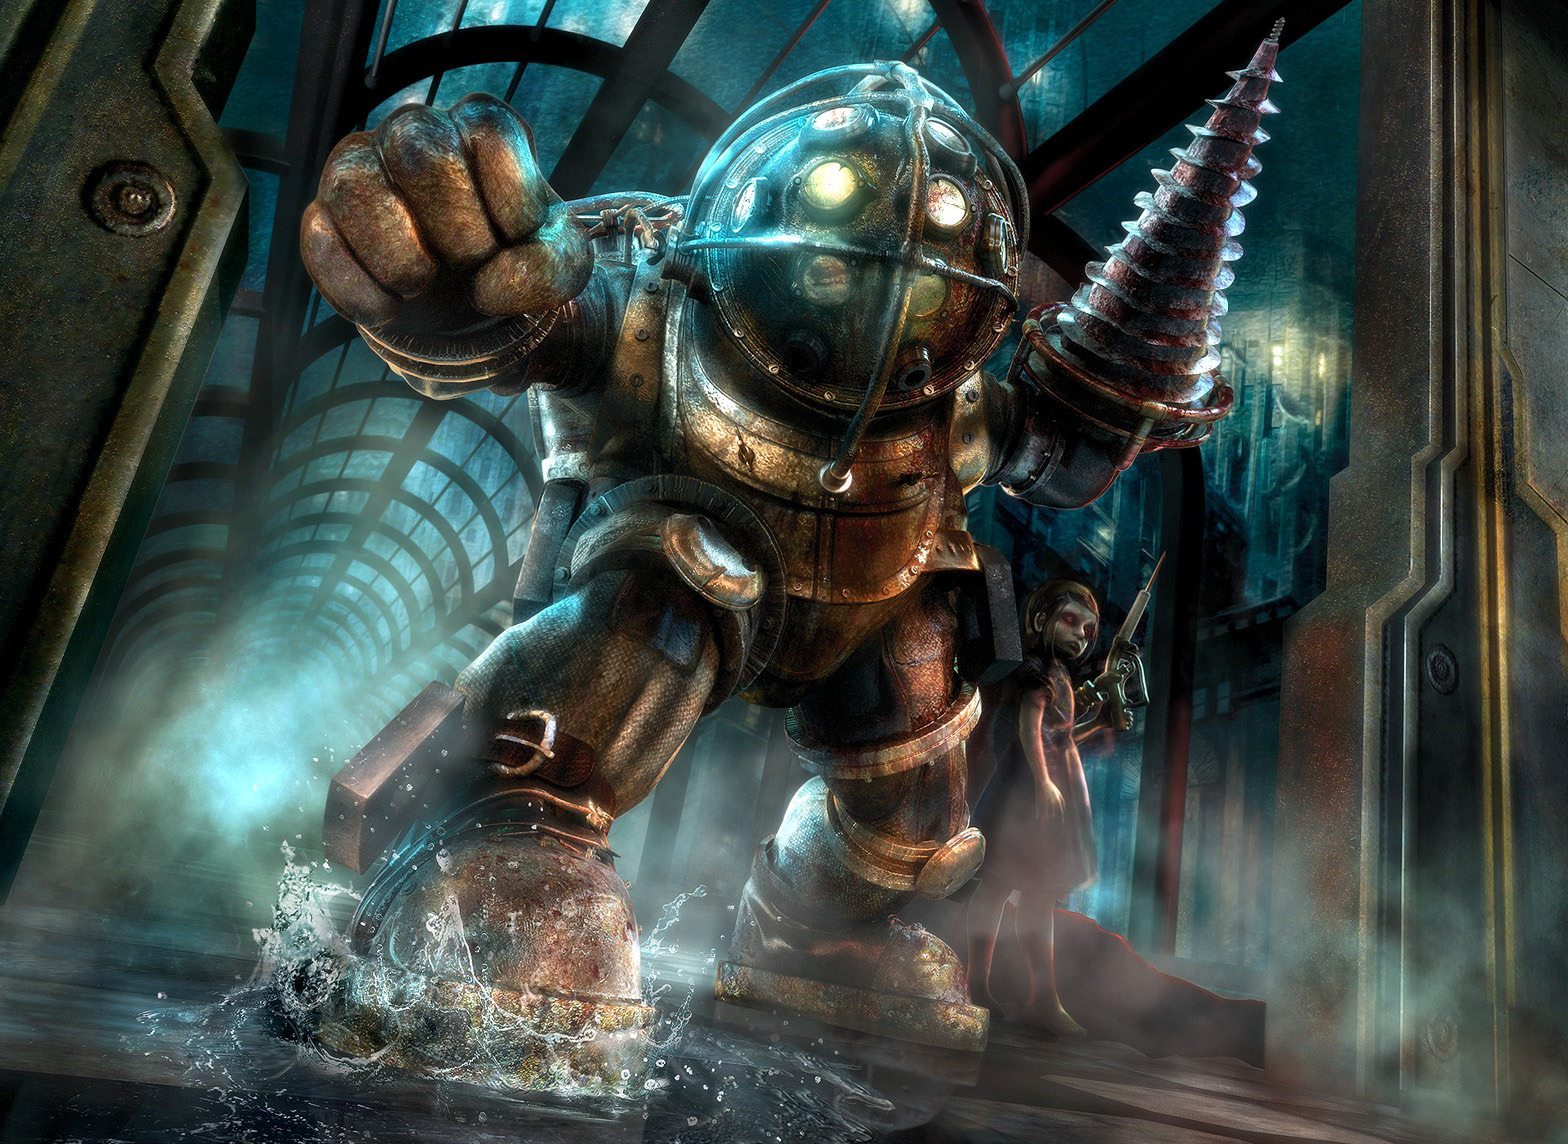 Bioshock movie killed by Ken Levine